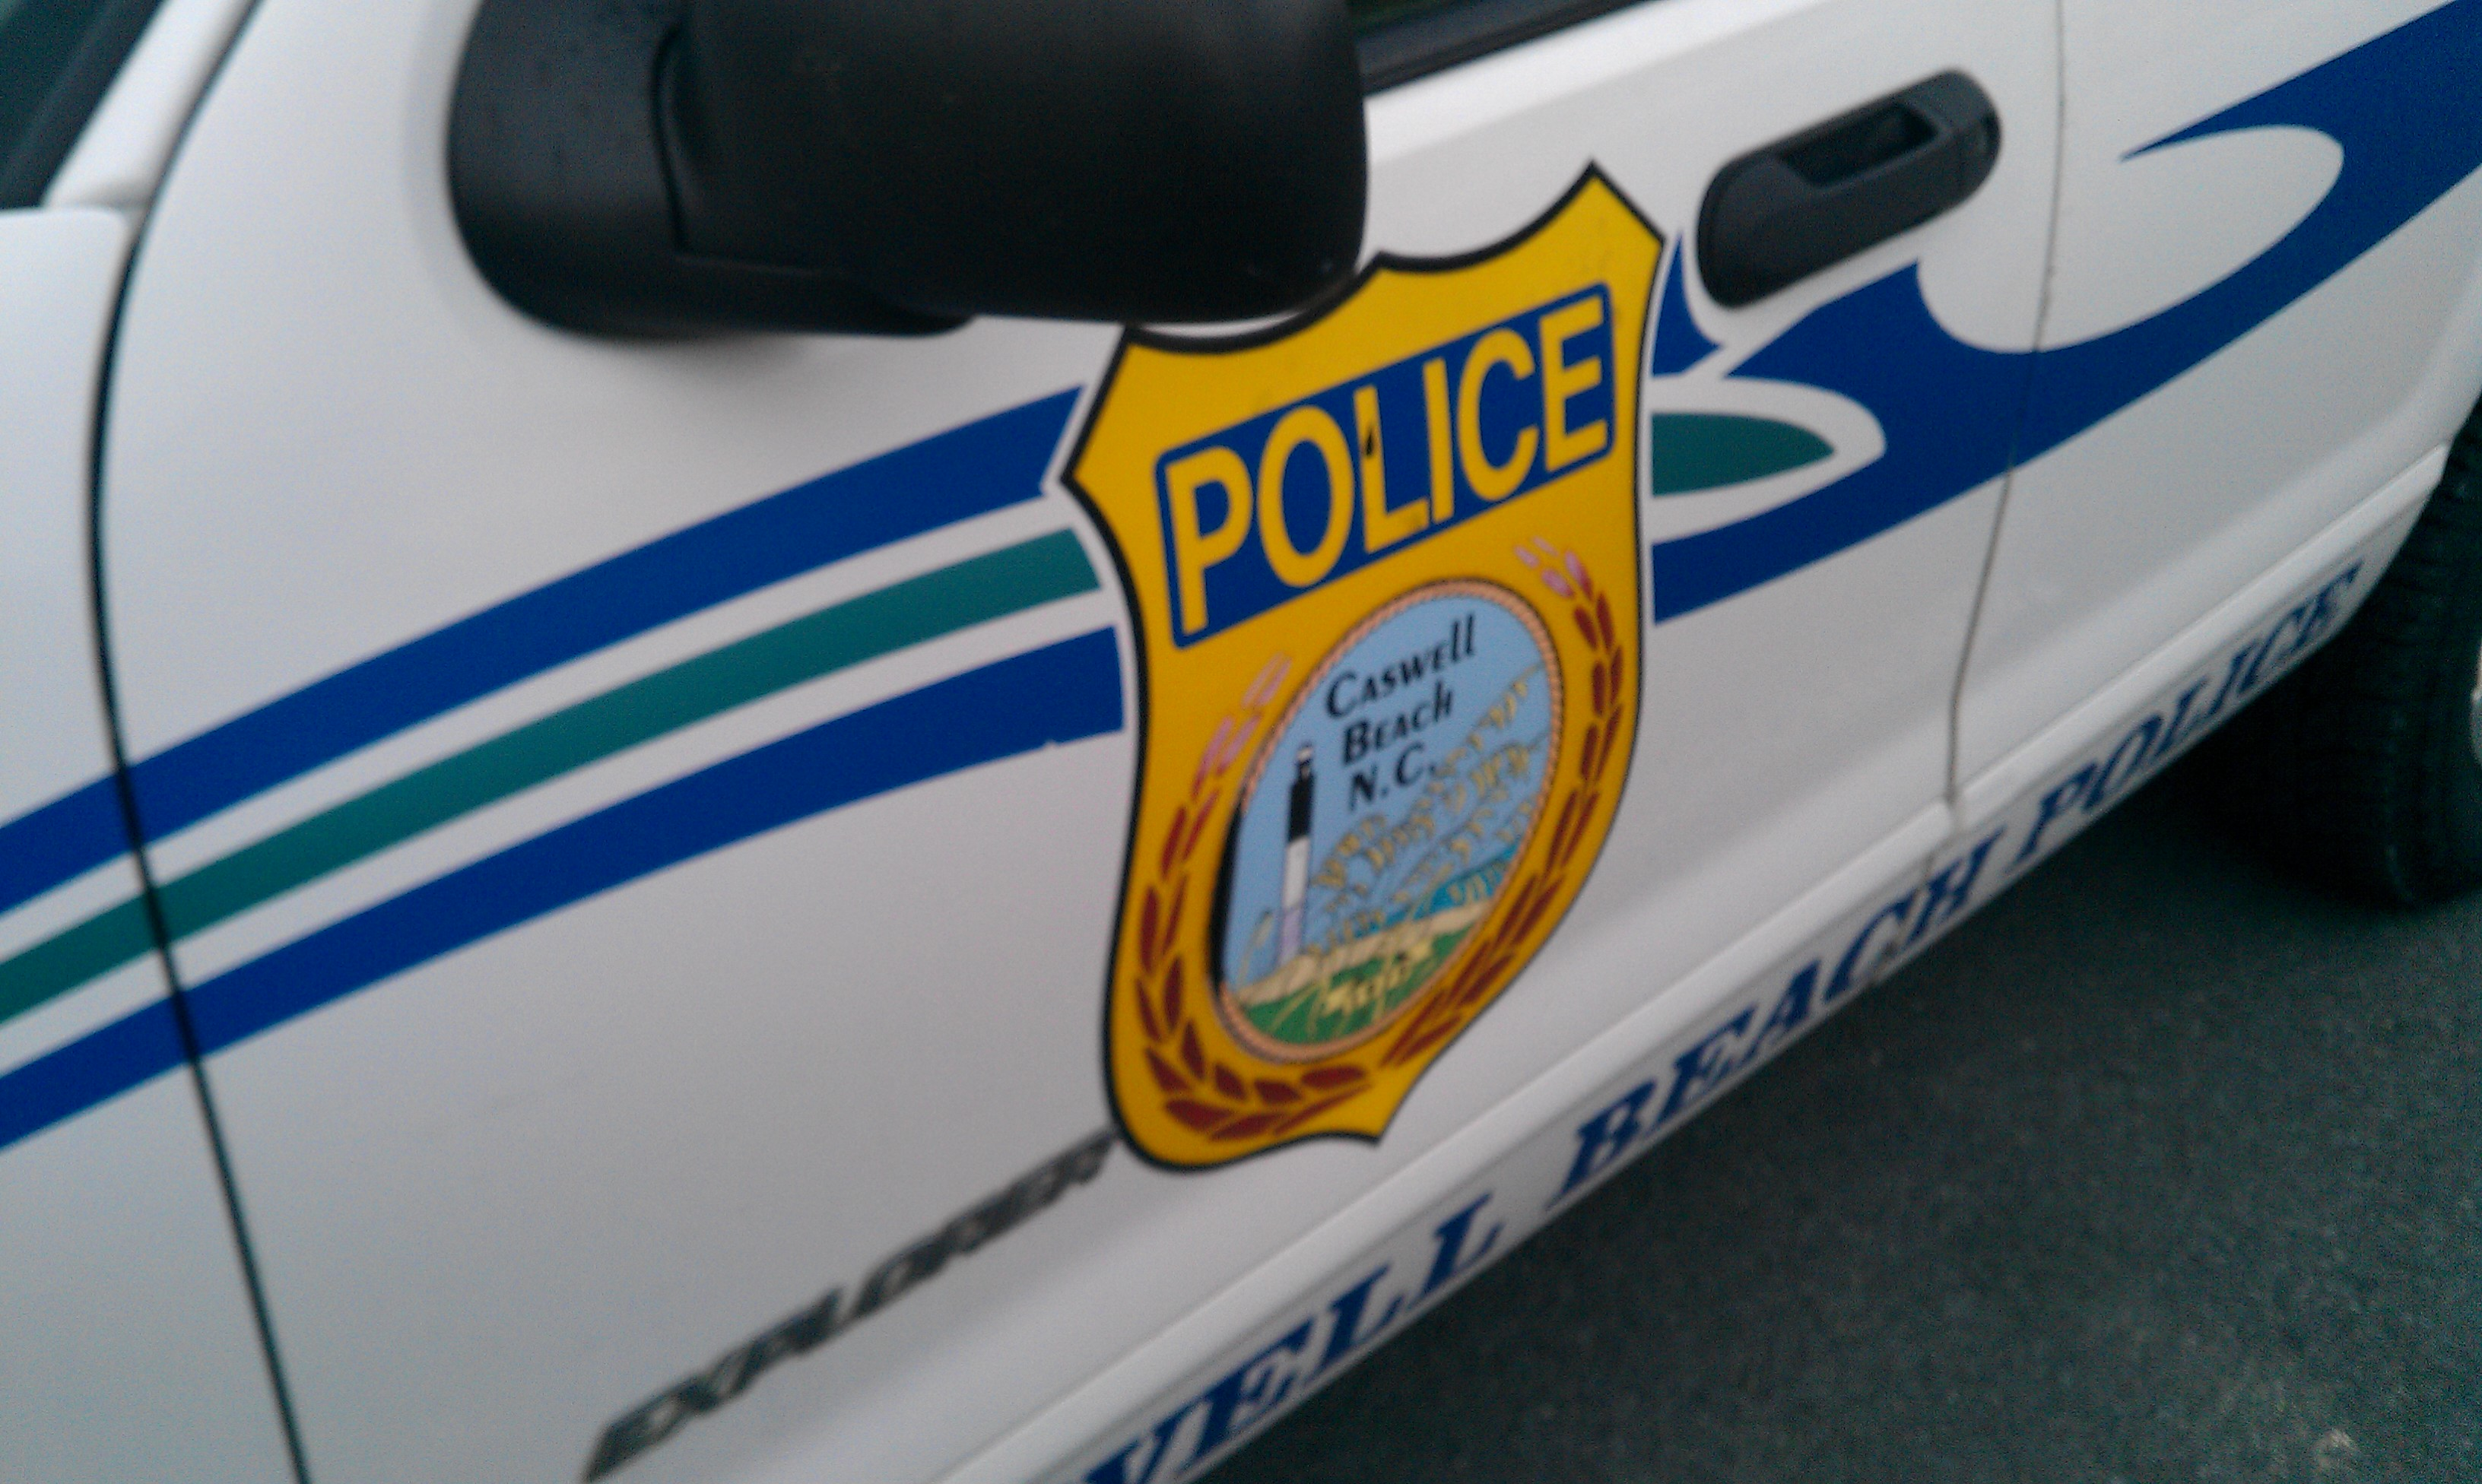 Caswell Beach Police Decal